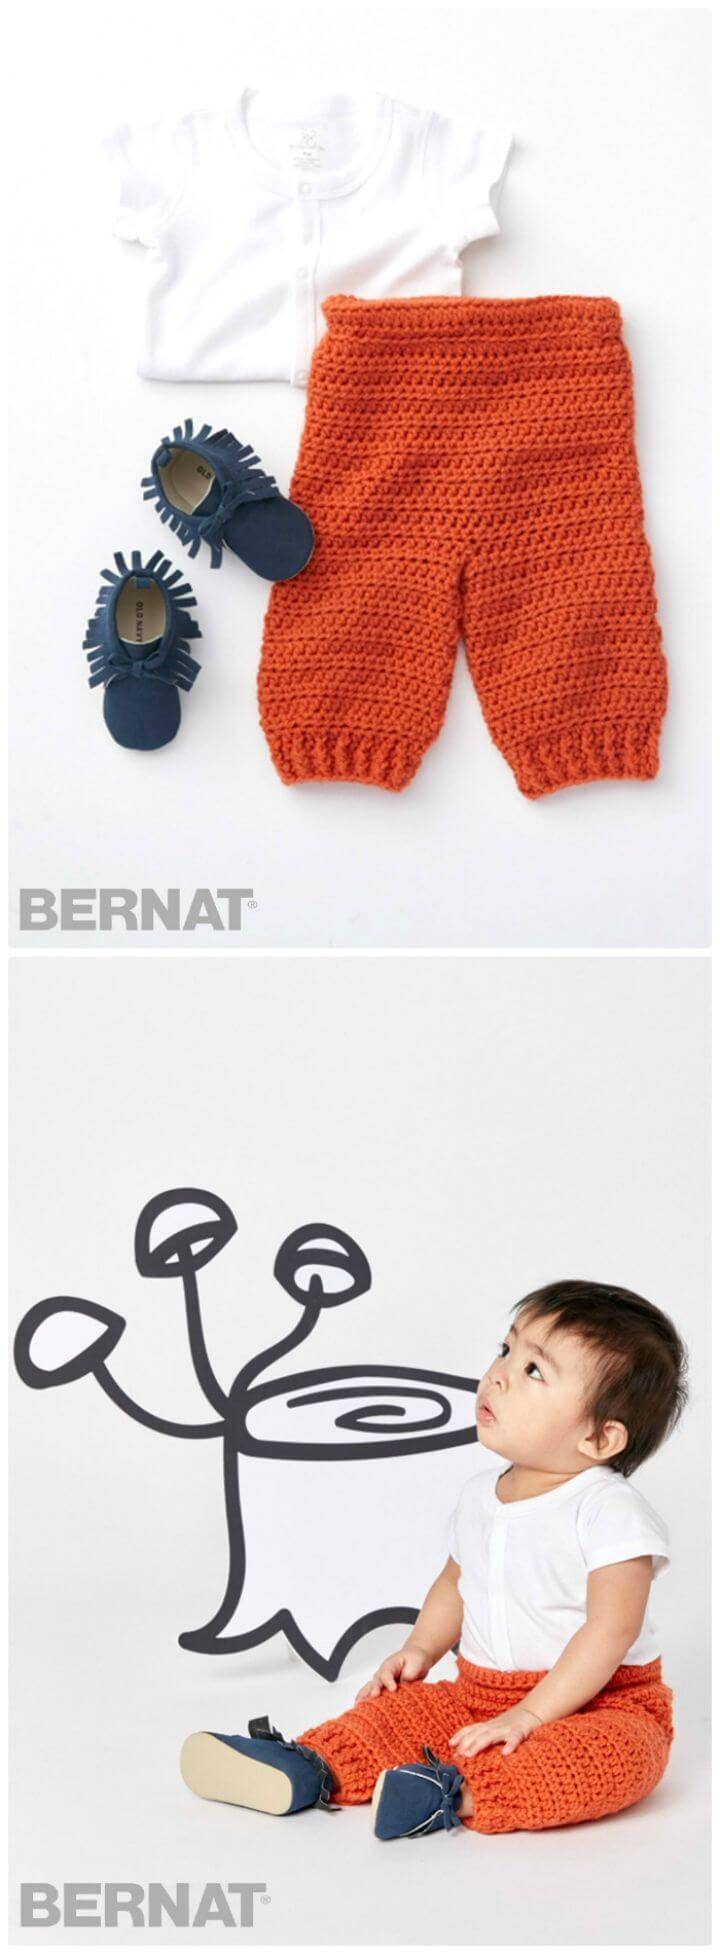 Easy Free Crochet Bernat Smarty Pants Pattern